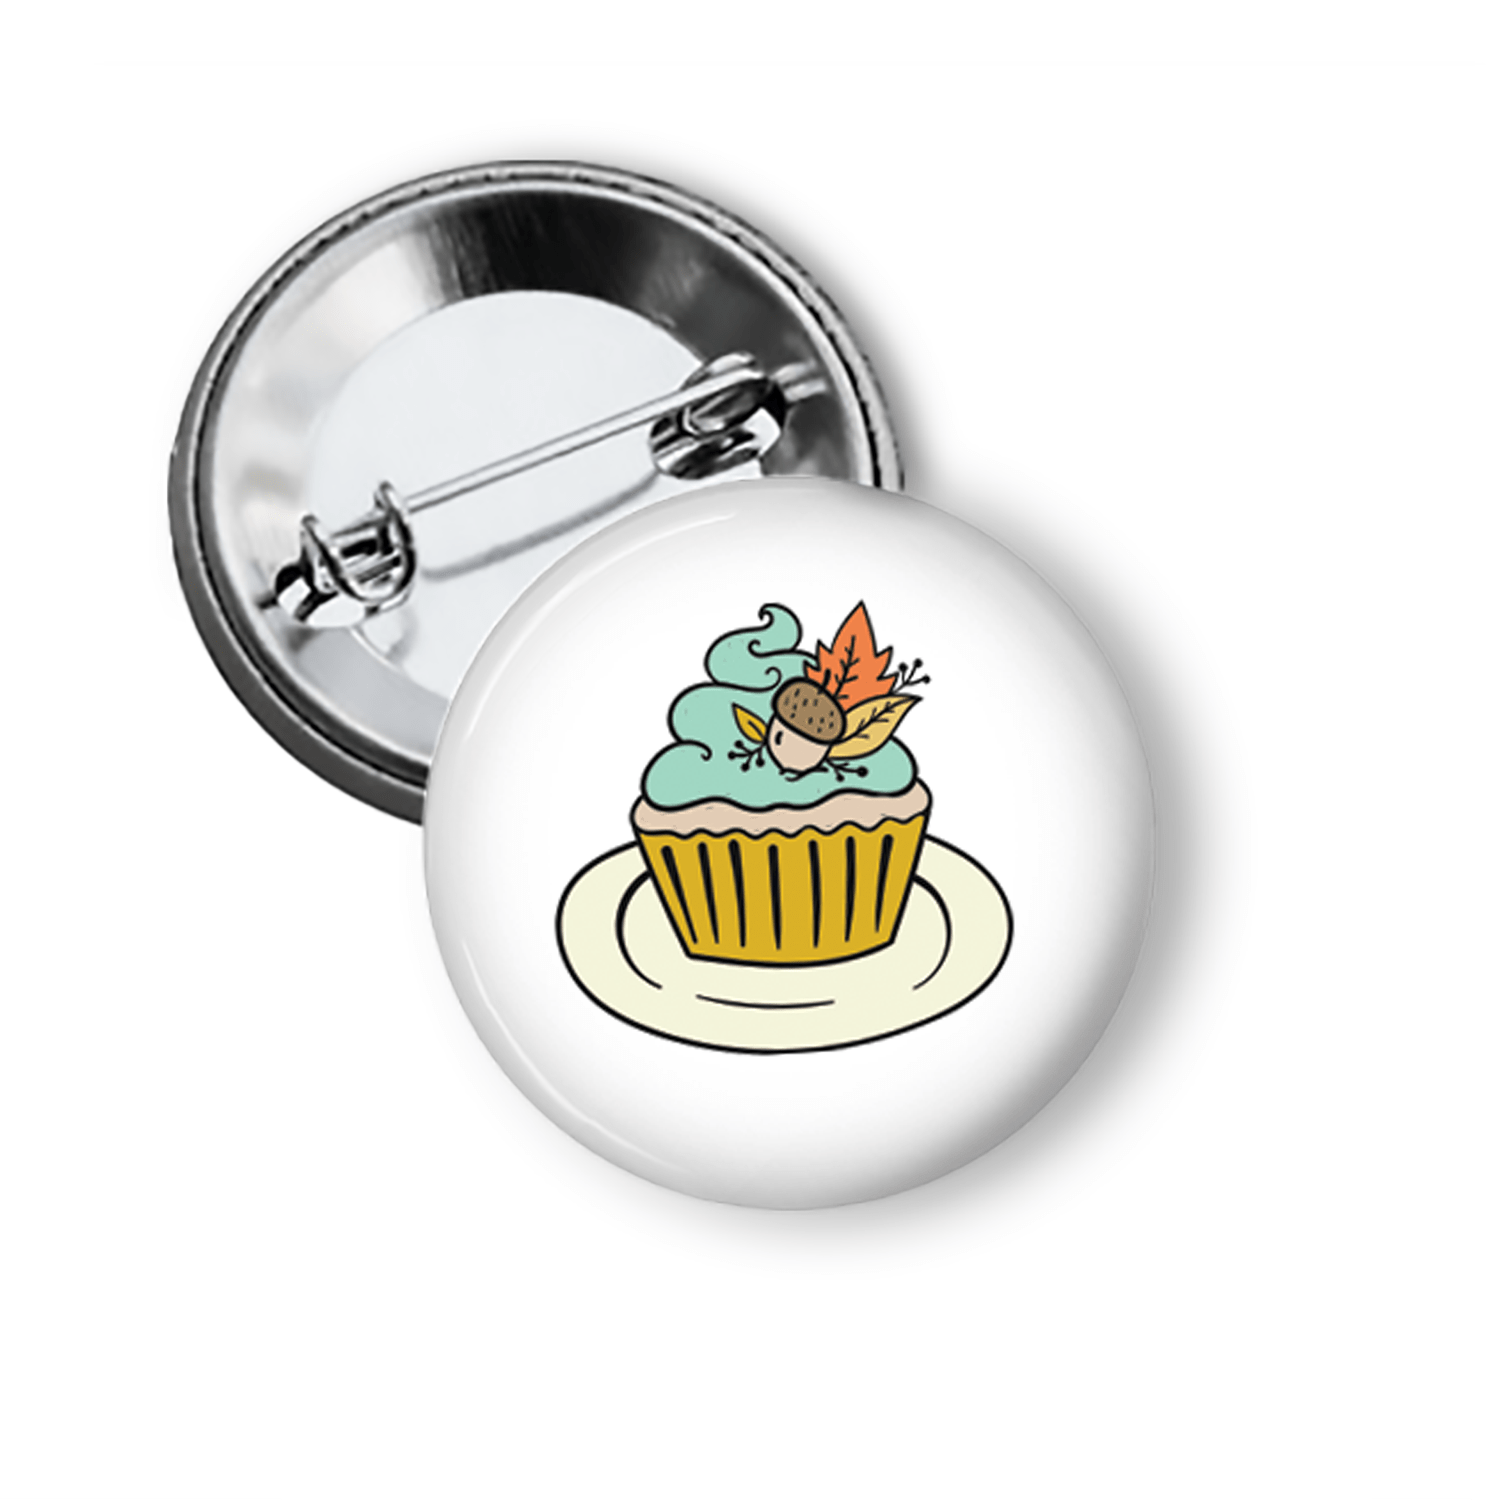 Fun Pins For Fall Cute Cupcake Pins Buttons For the People